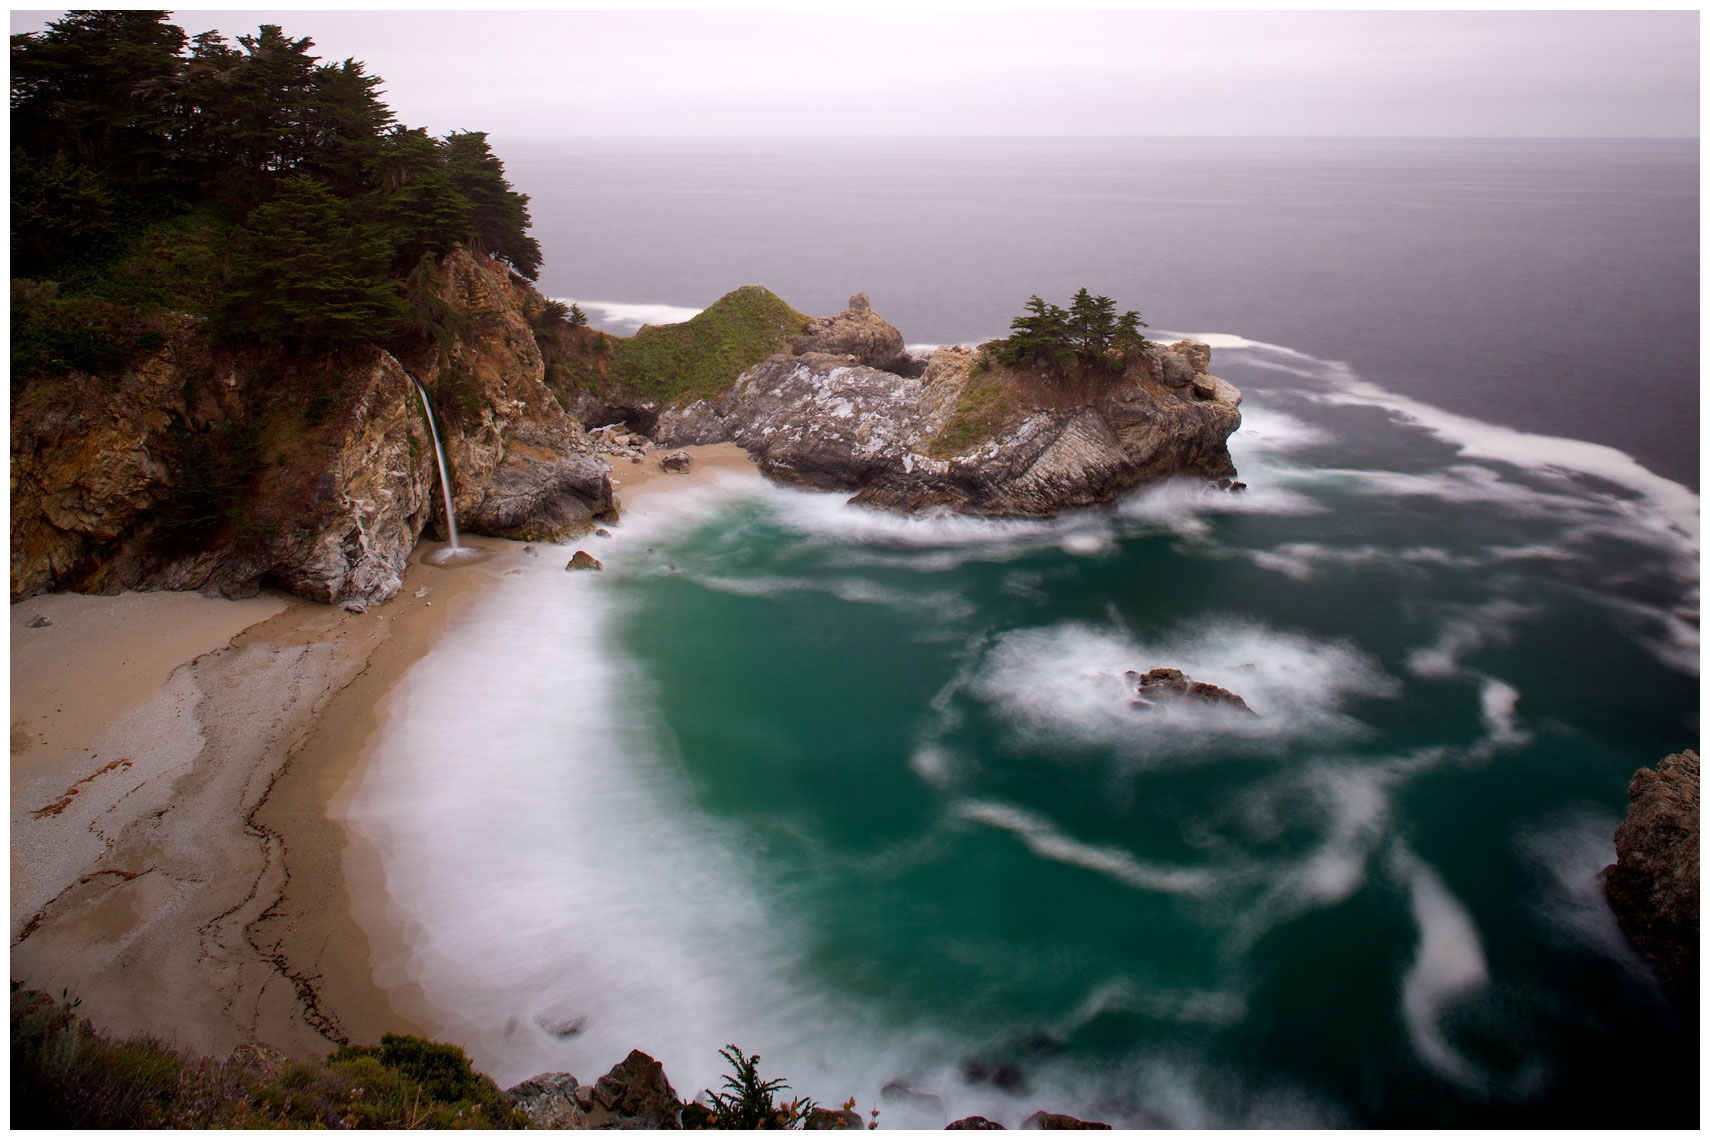 McWay Falls at Julia Pfeiffer Burns State Park in Big Sur, California